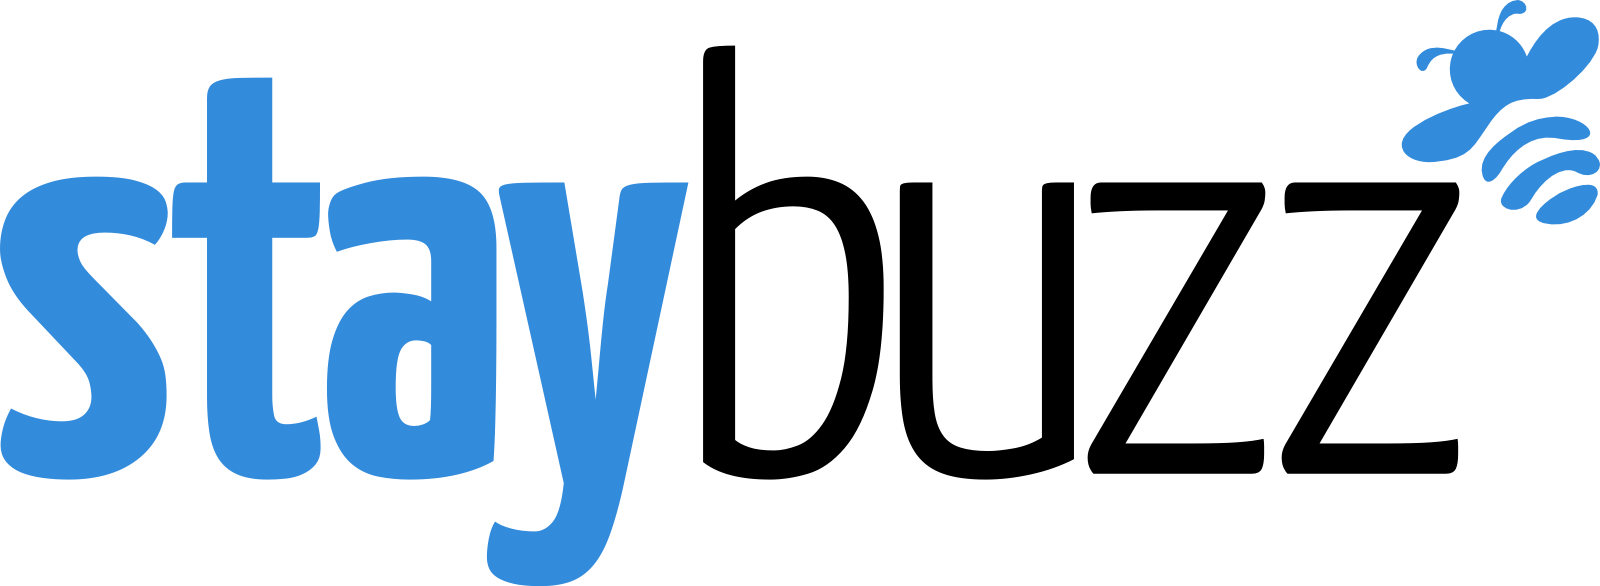 Staybuzz logo